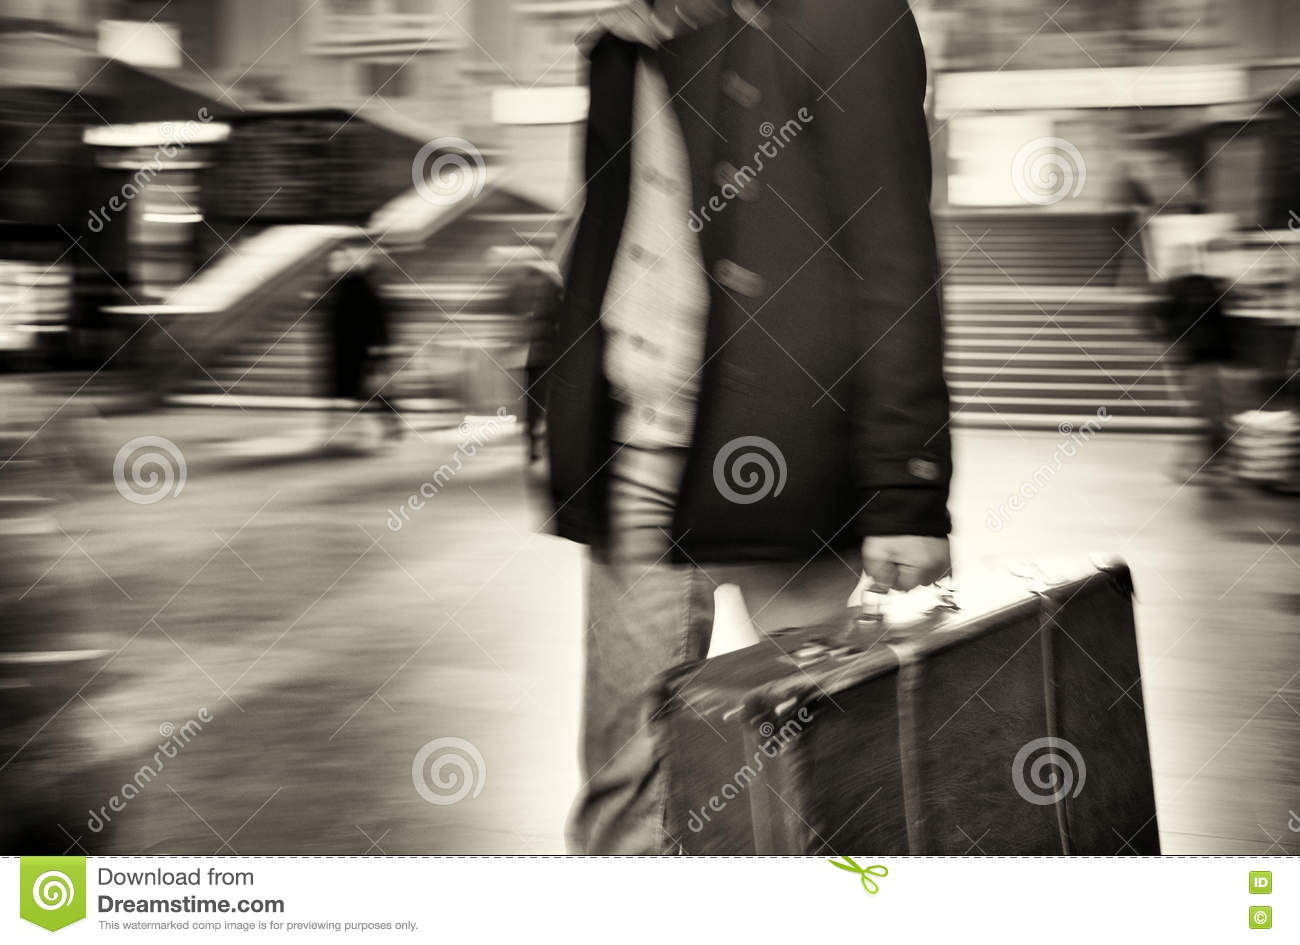 The man in the coat comes with a suitcase at the station blurred motion black and white photo